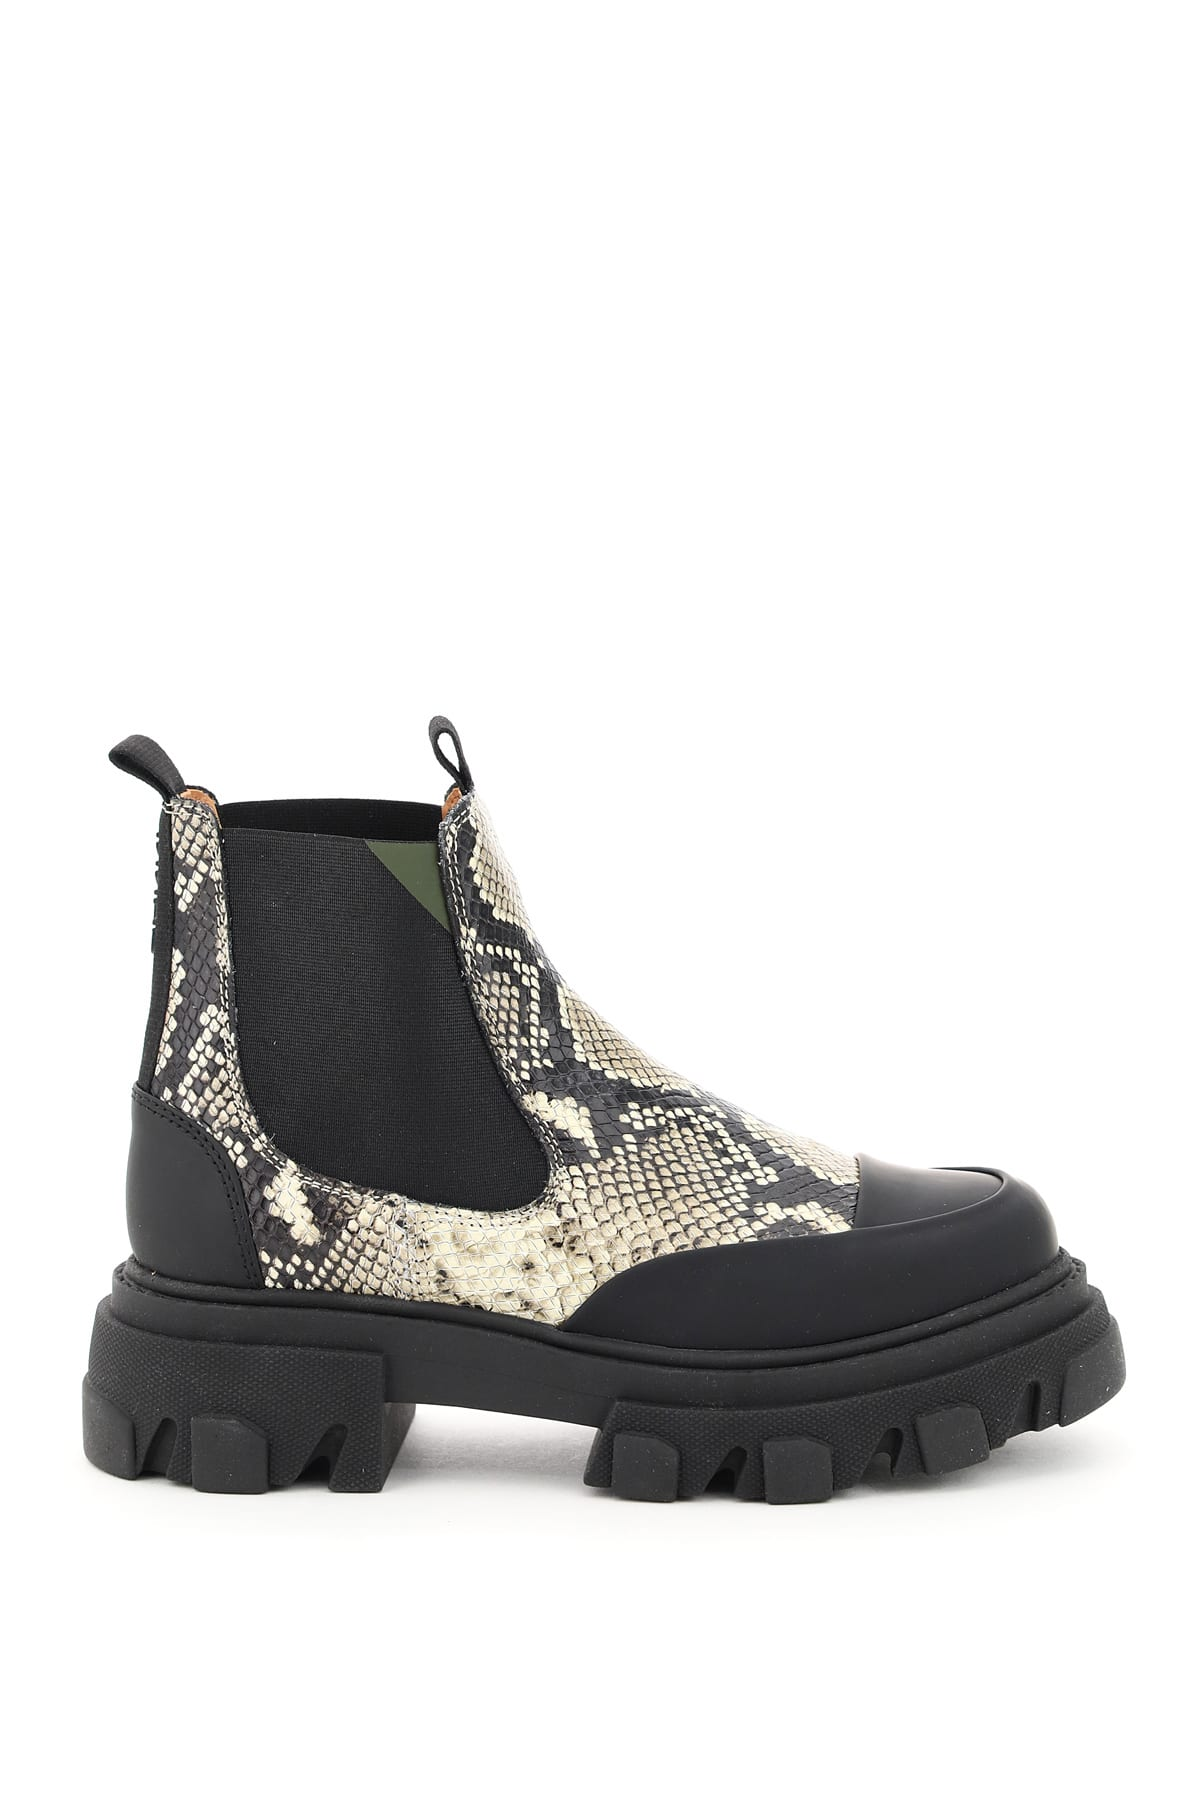 Ganni PYTHON PRINT LEATHER BOOTS